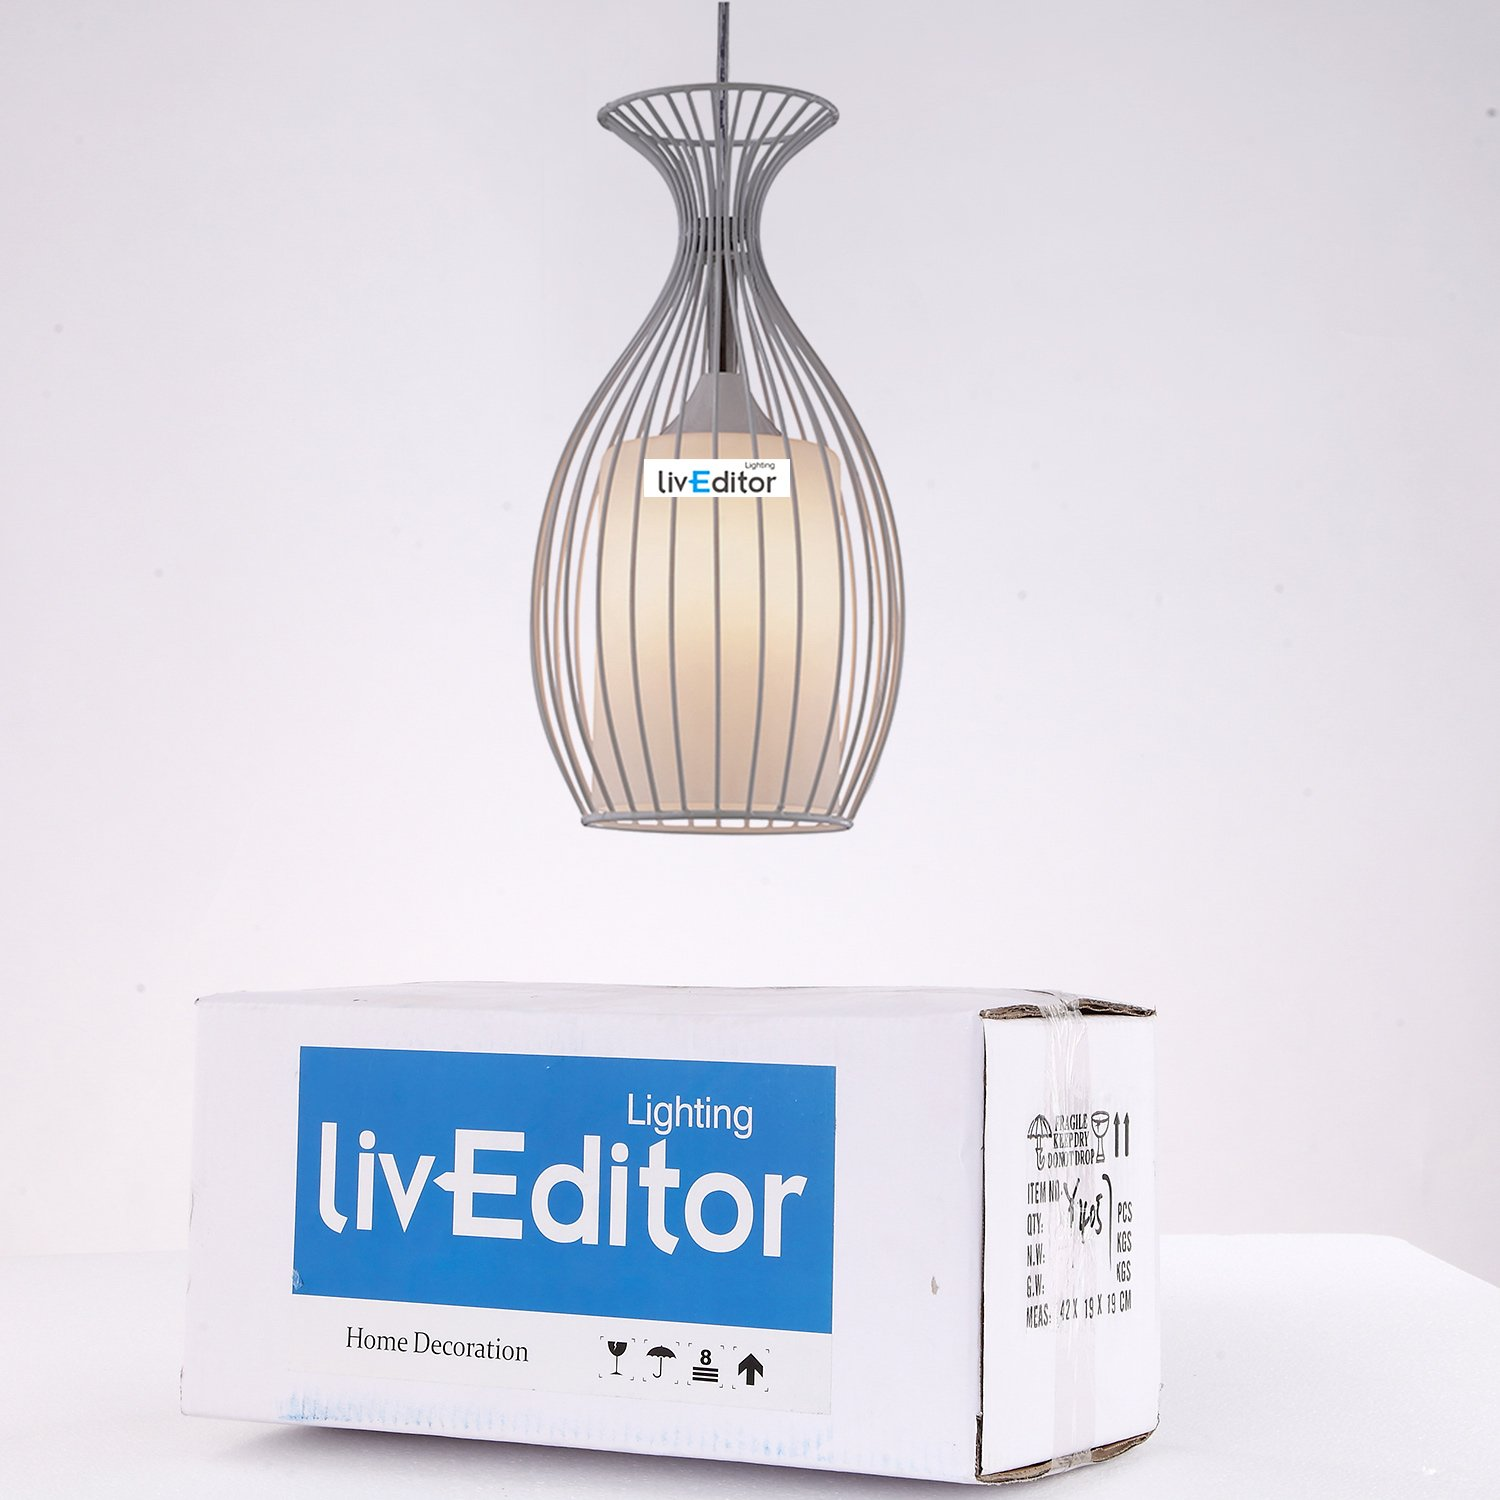 LivEditor Lighting One-light Pendant with Metal Cage Shade Kitchen Island Lamp(Y4051-WM) by Liveditor Lighting (Image #5)